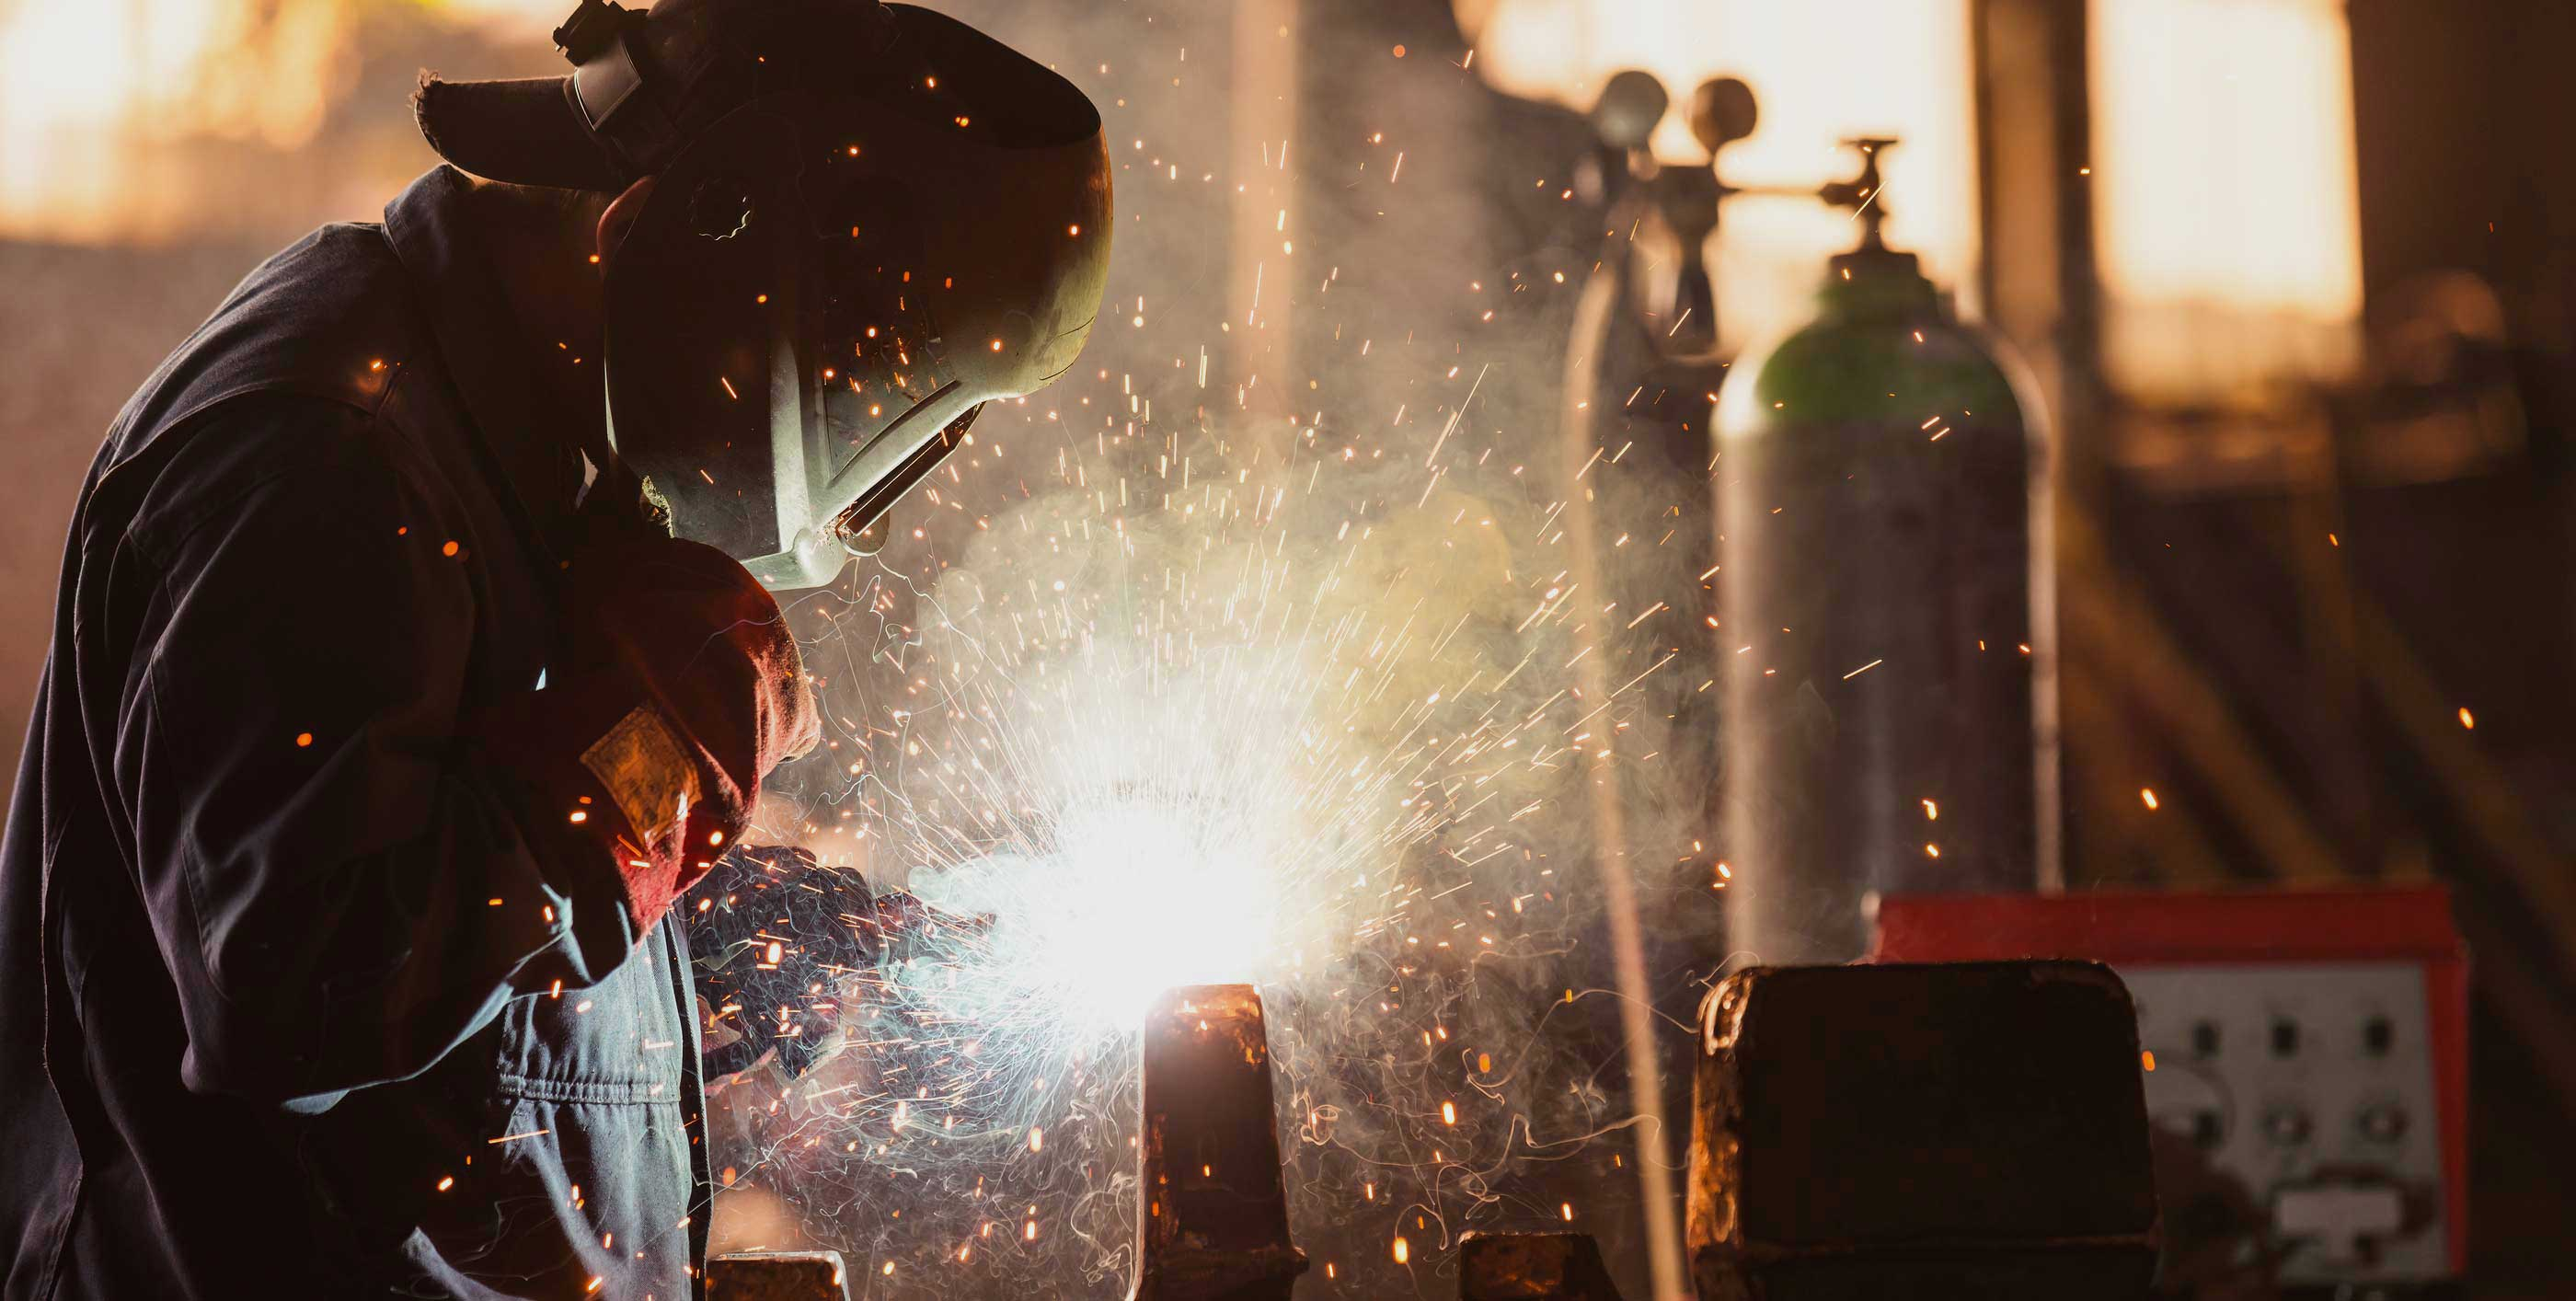 bigstock-Industrial-Worker-at-the-facto-723322541